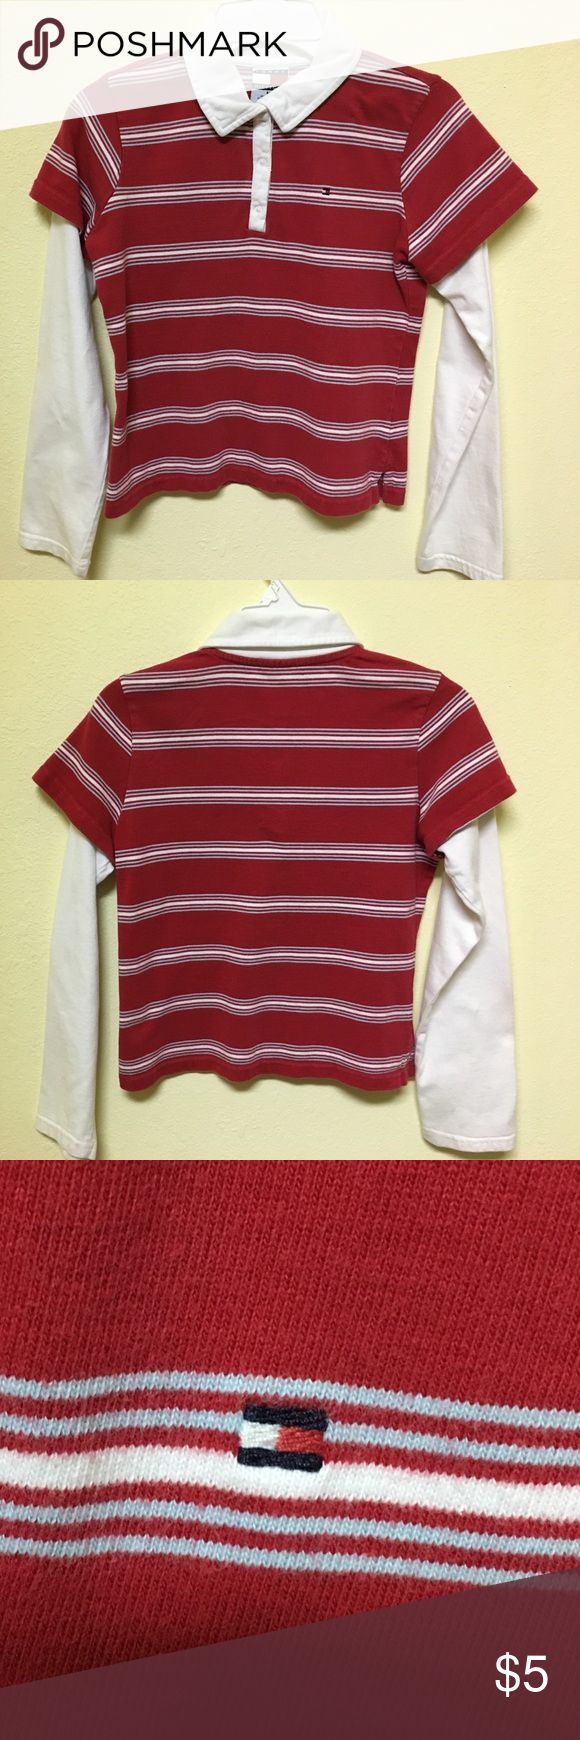 Tommy Hilfiger Girls Size Med Red and White Shirt Tommy Hilfiger Girls Size Med Red and White Shirt Tommy Hilfiger Shirts & Tops Tees - Long Sleeve